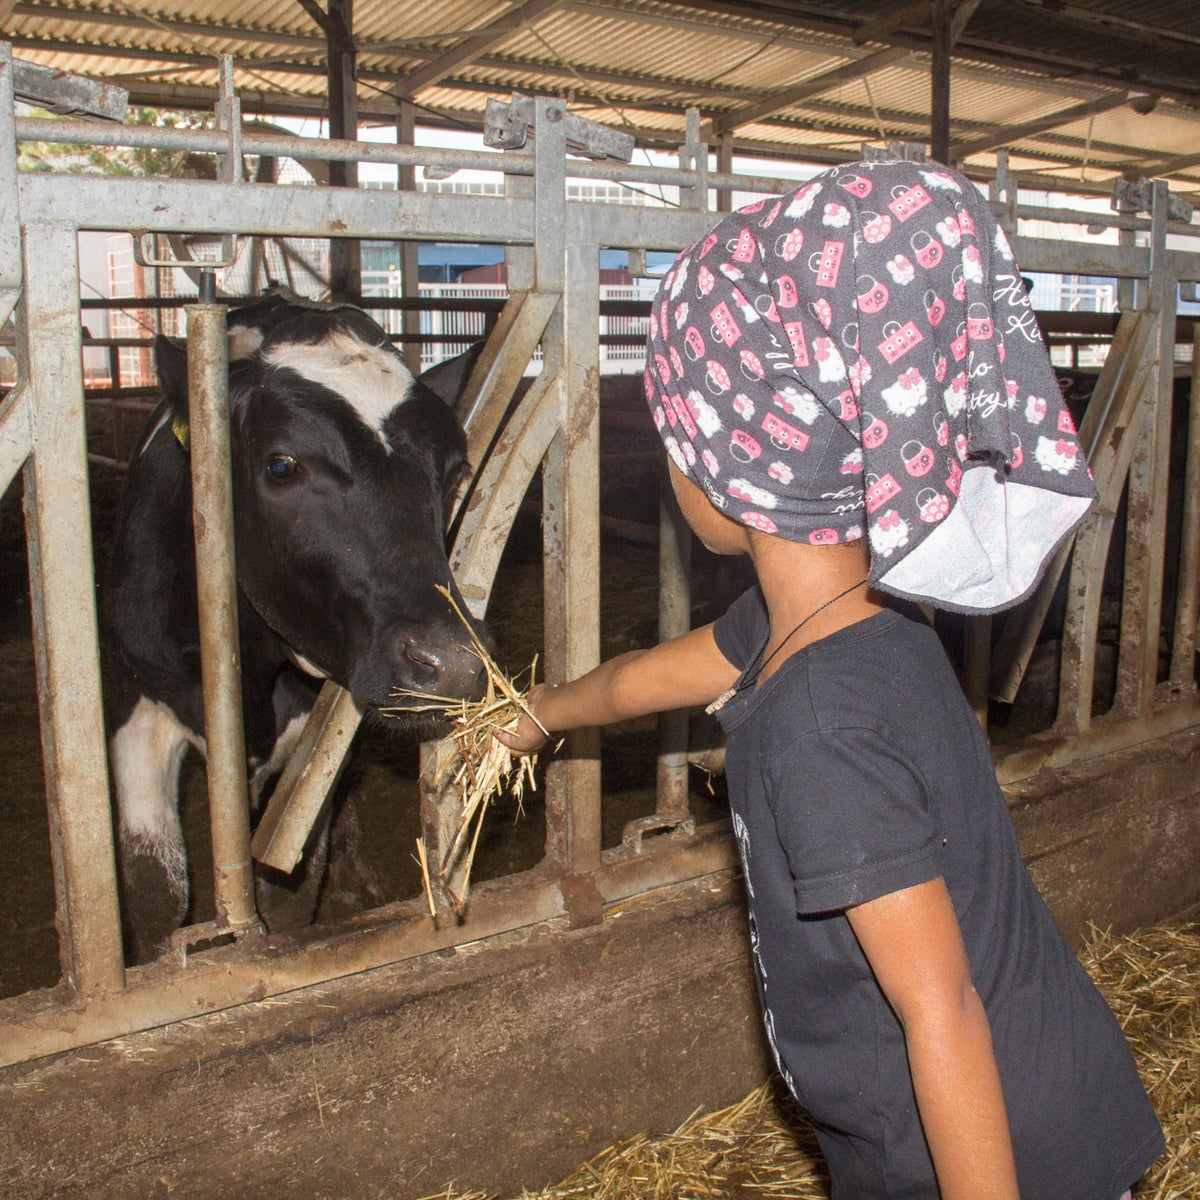 Mariam's 5-year-old daughter feeding a cow at Kibbutz Ma'agan Michael, northern Israel, July 2018.